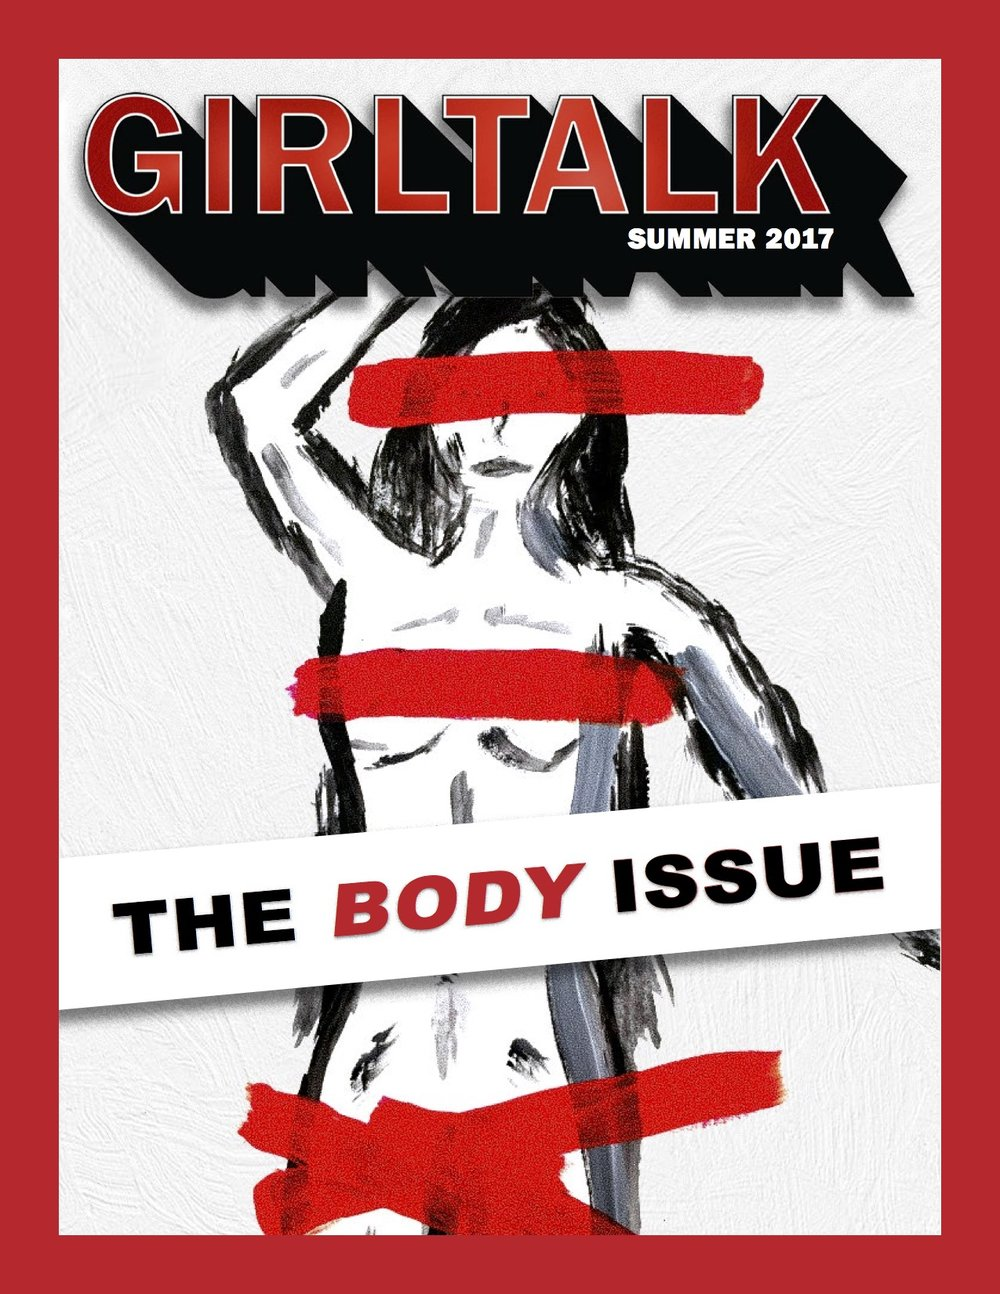 The Body Issue - Summer 2017